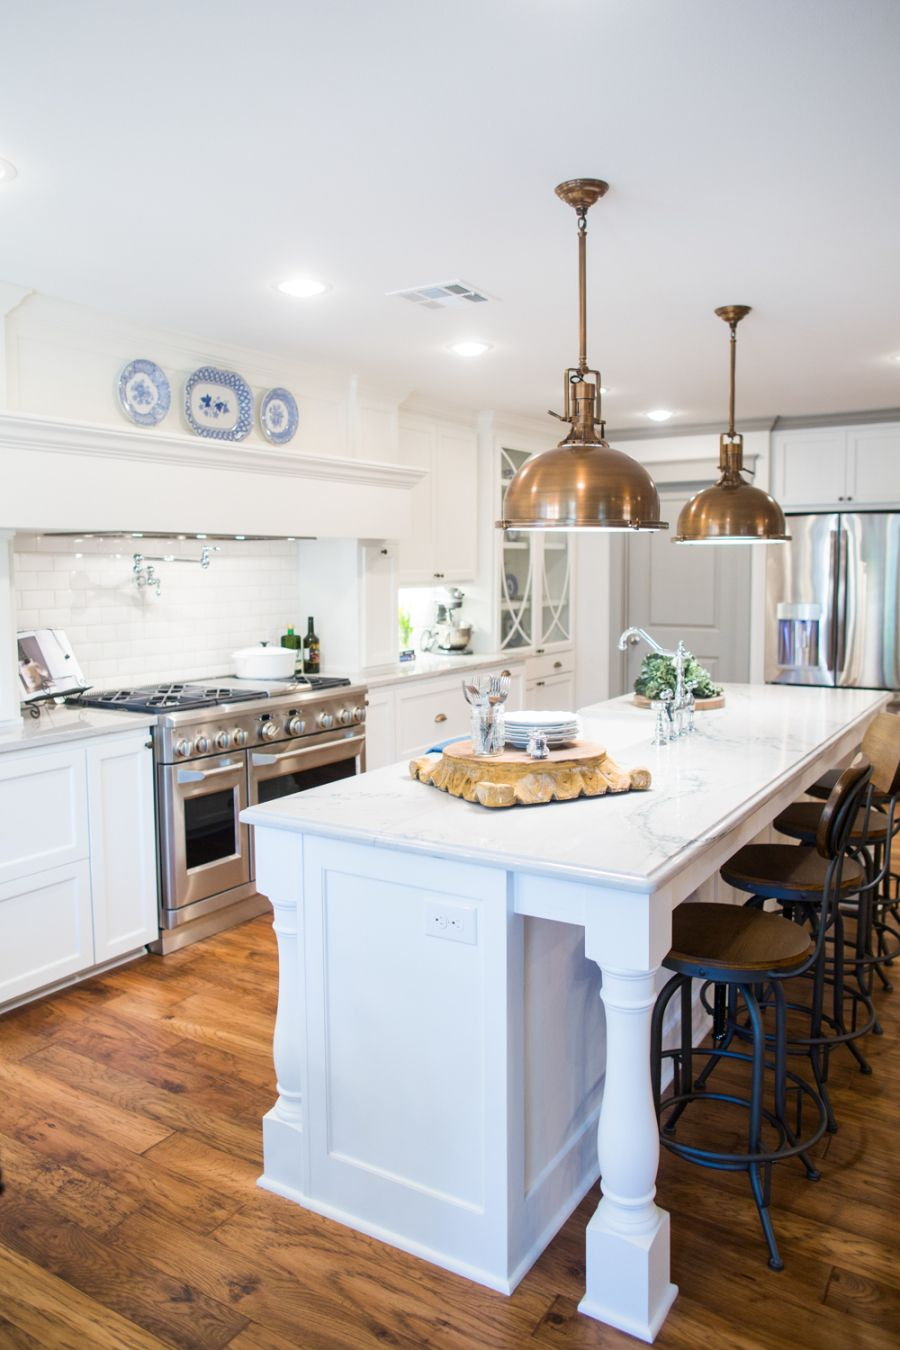 Our favorite hgtv fixer upper interior design moments for Kitchen ideas joanna gaines